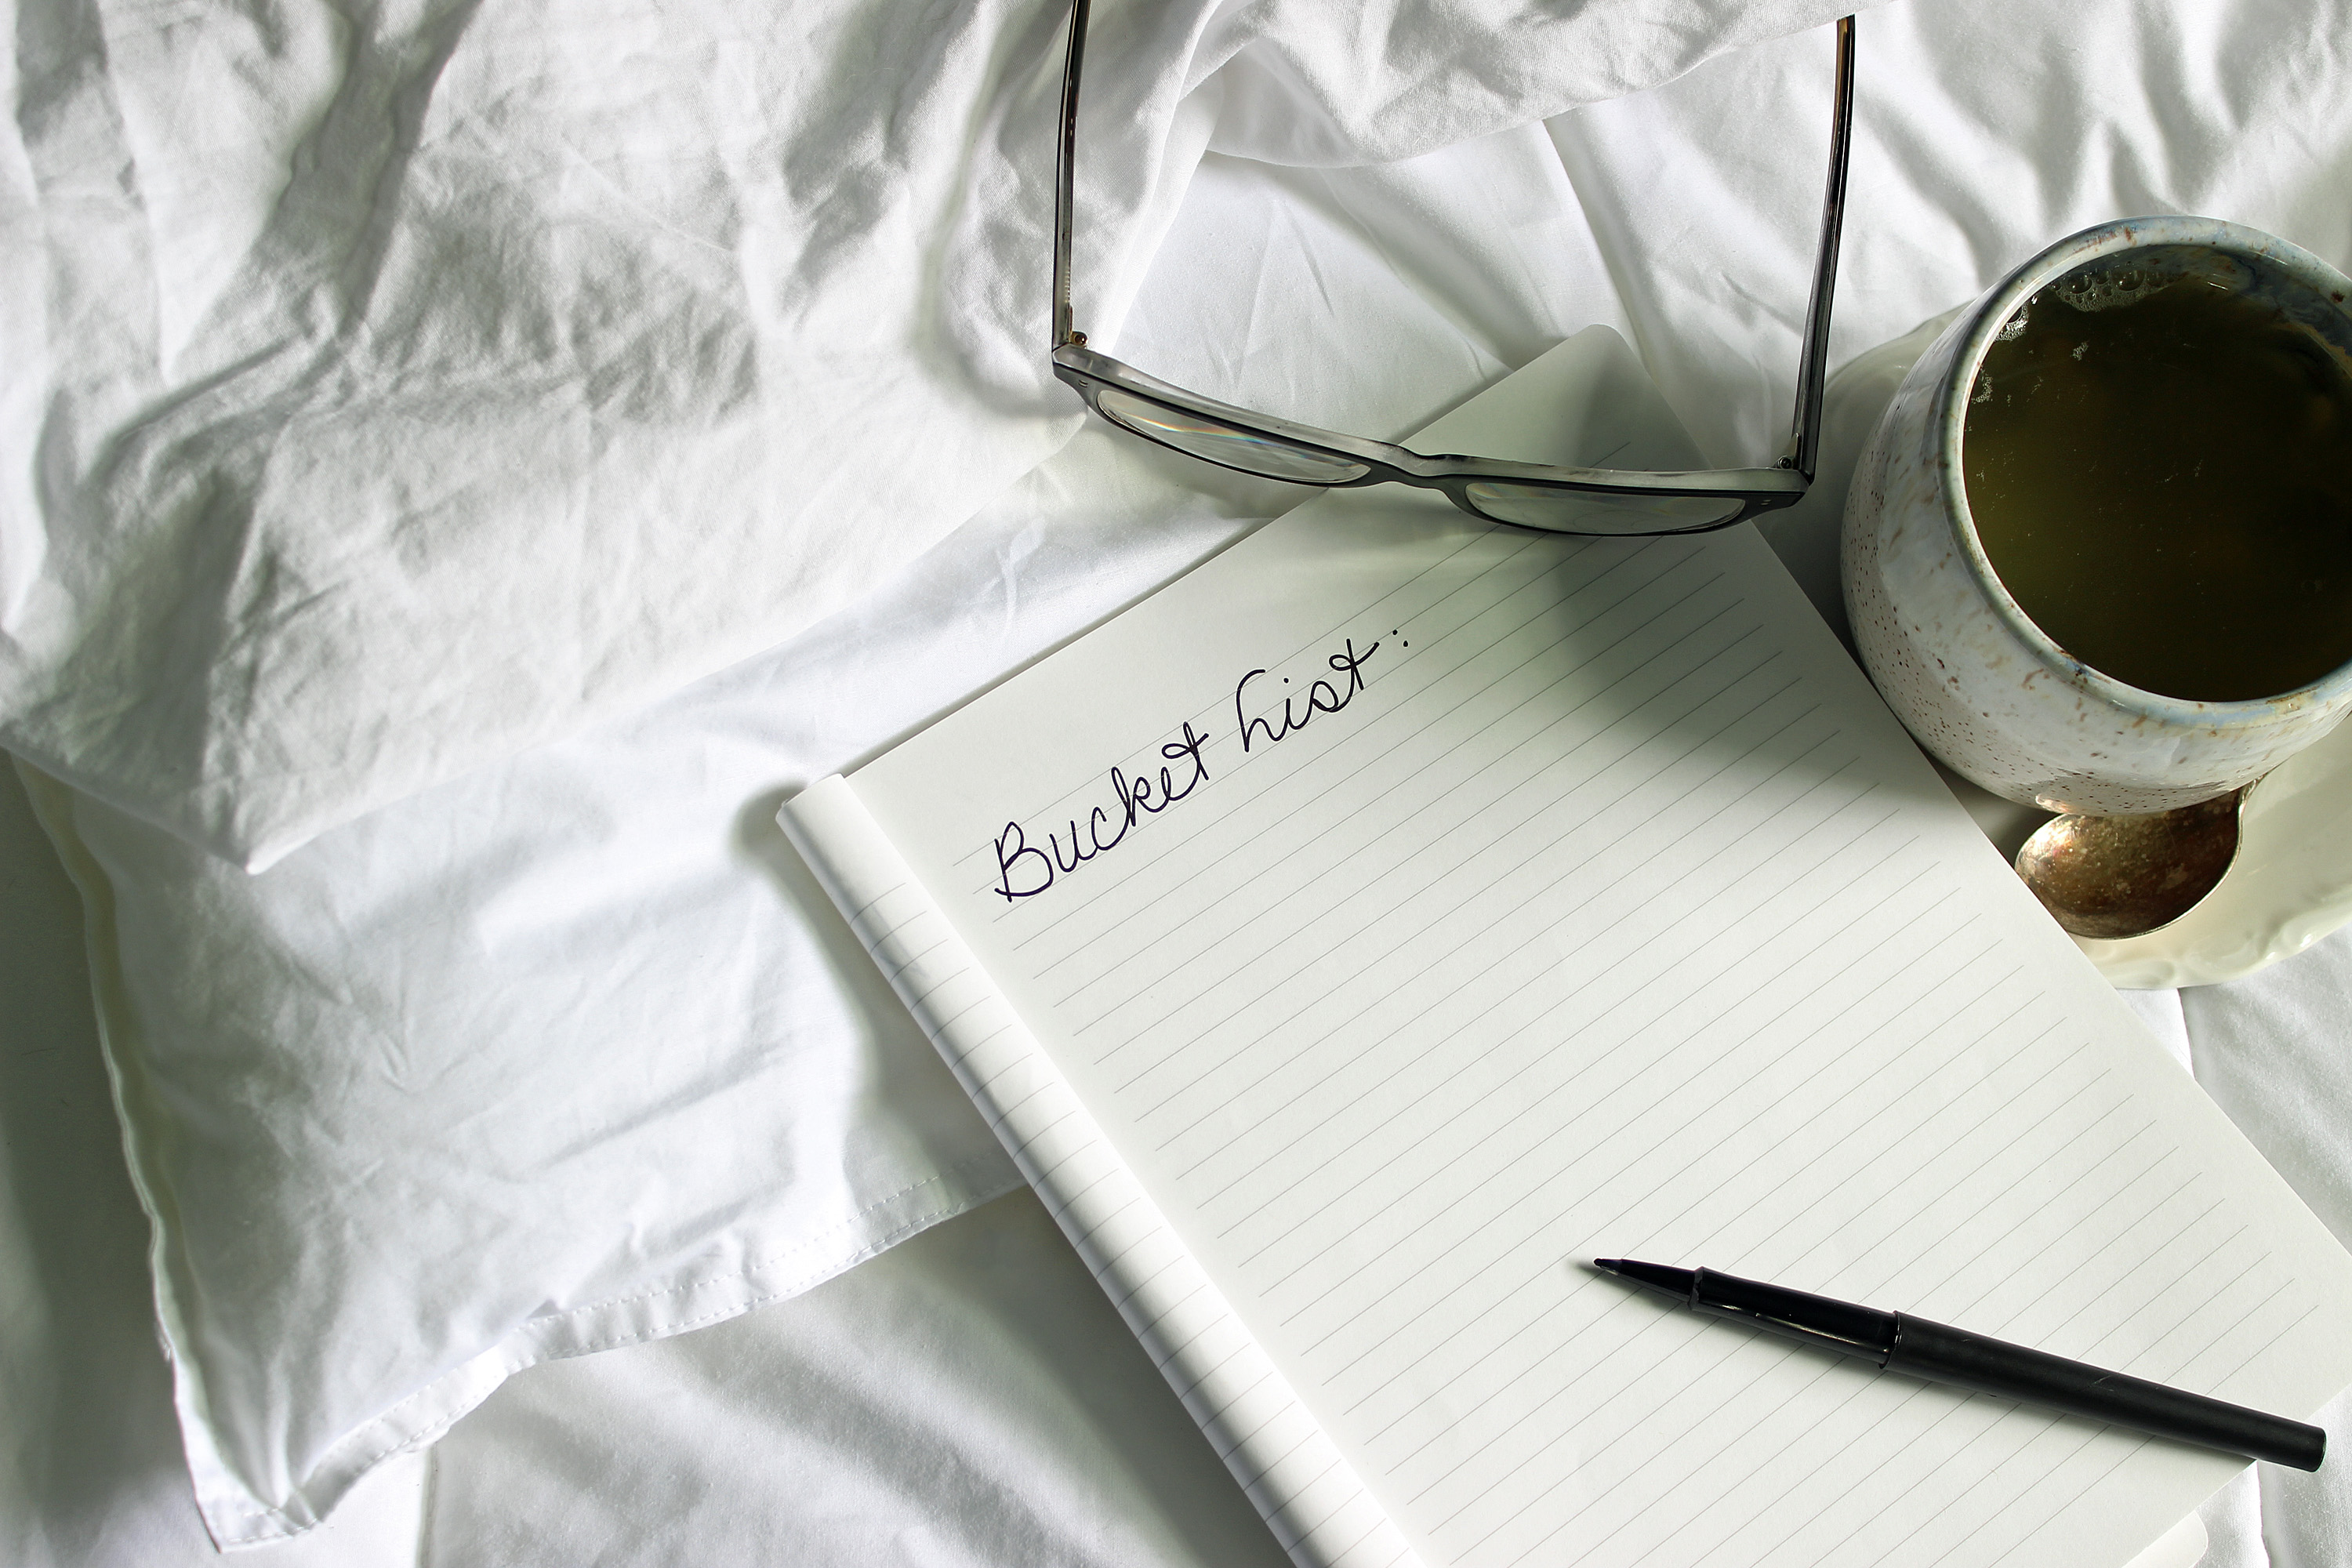 """Bucket List"" printed on blank notebook, eyeglasses, cup of tea in white unmade bed."